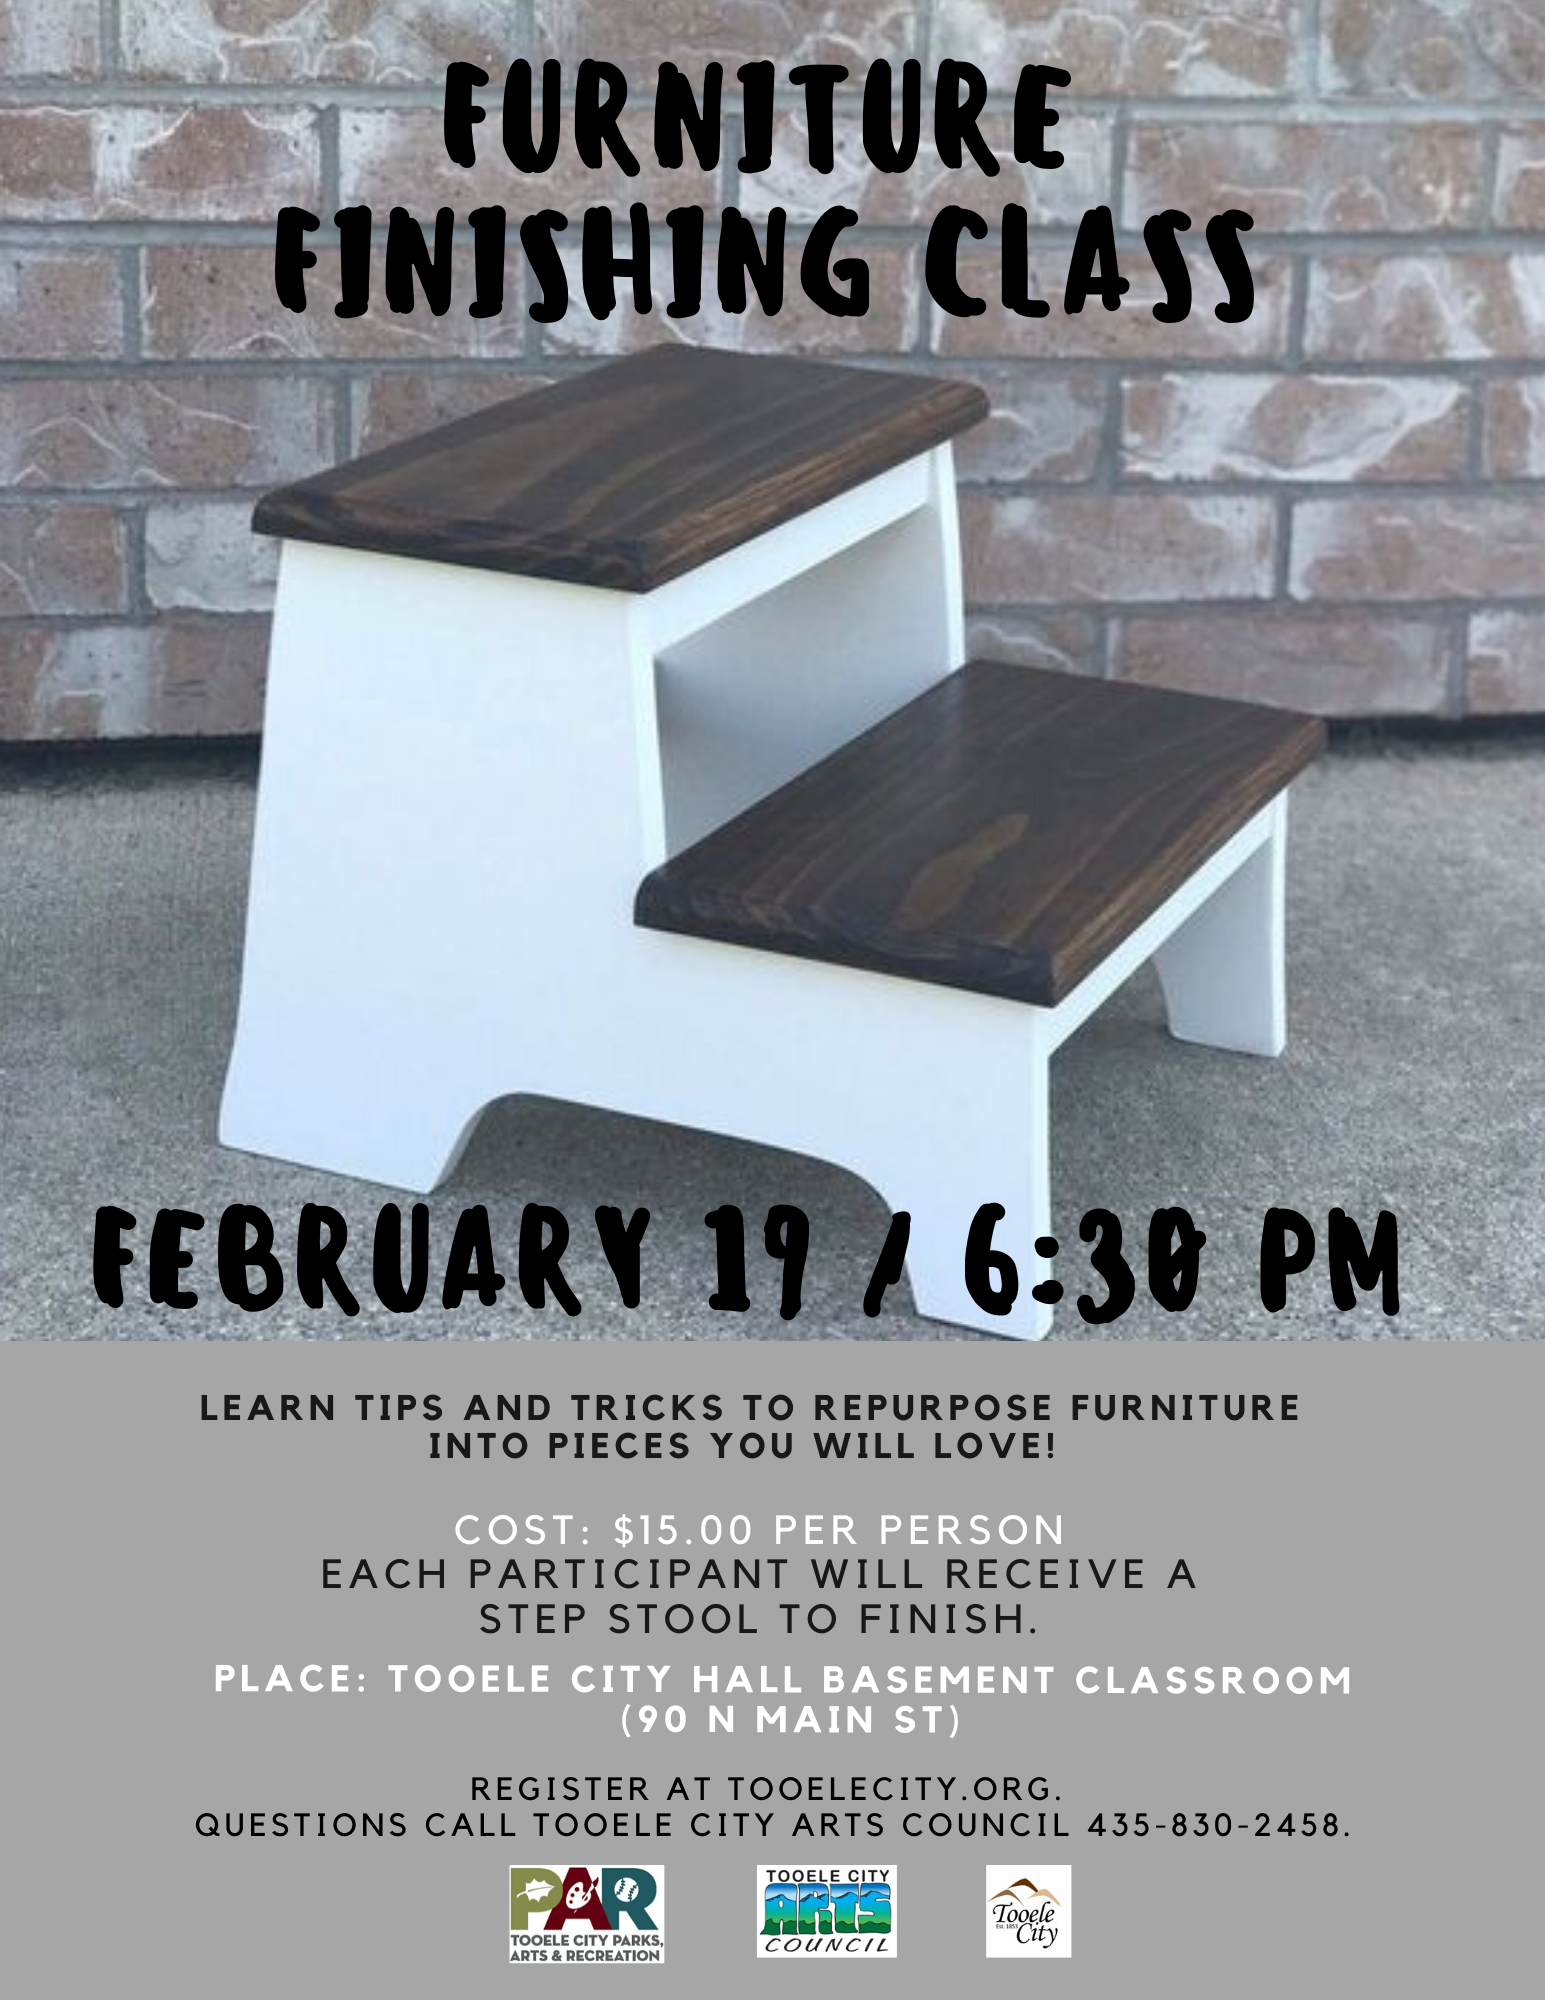 Furniture Finishing Class - February 19, 2020